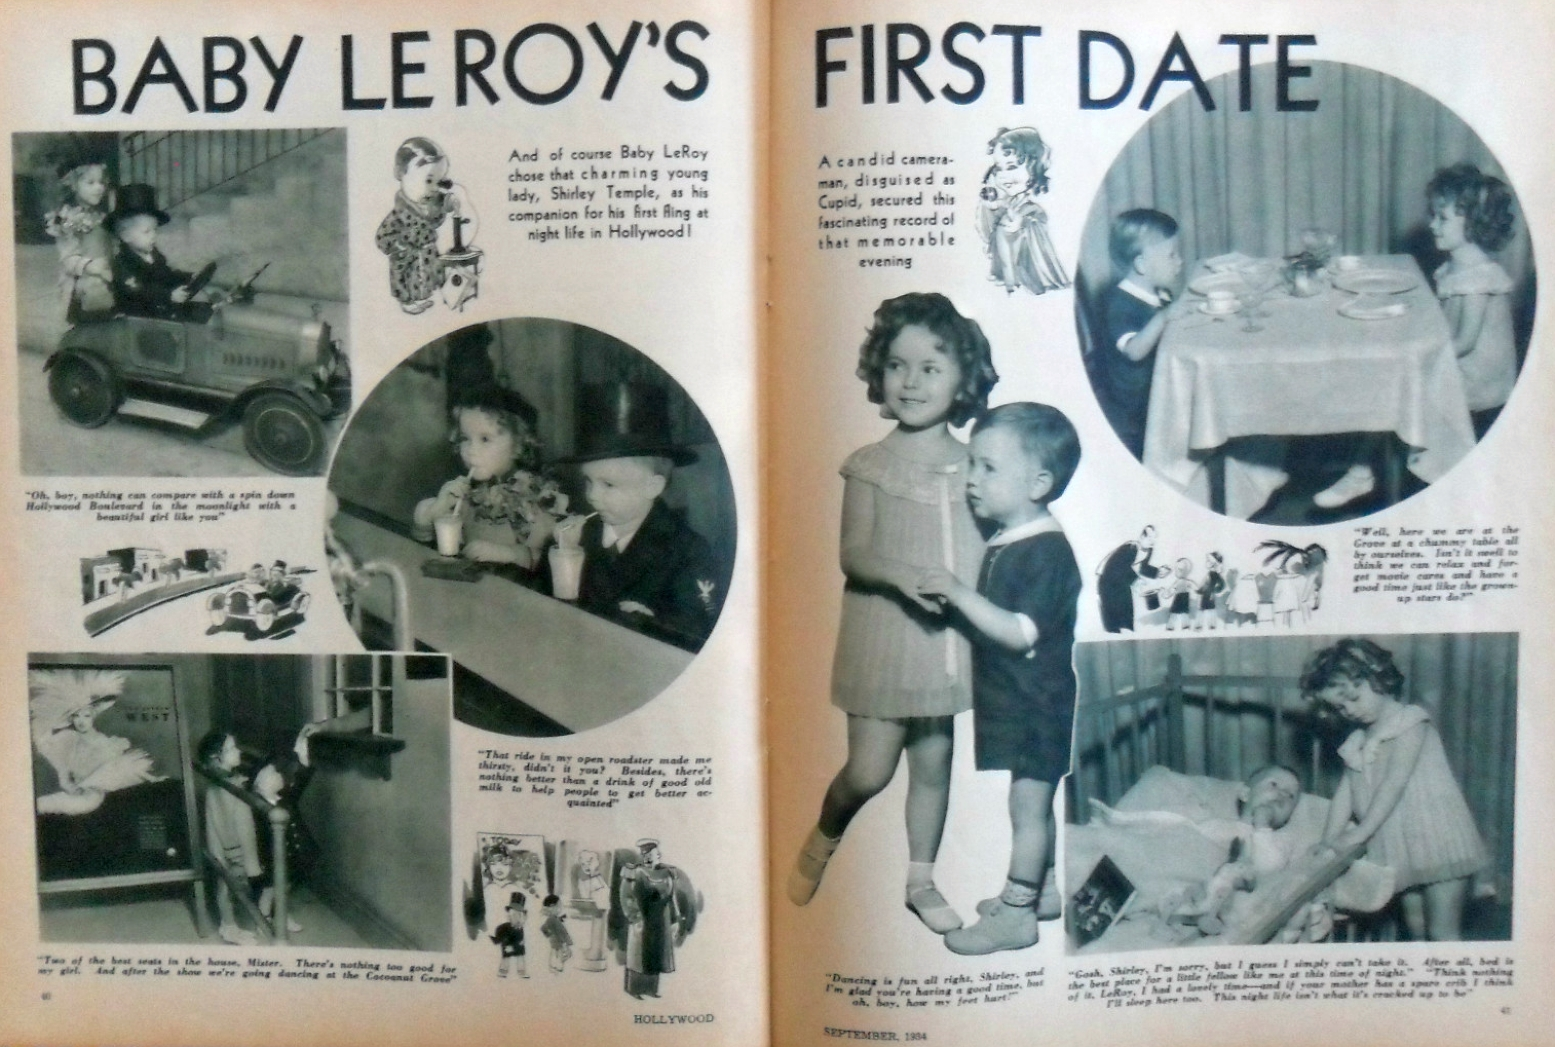 hollywood magazine september 1934a baby leroy shirley temple